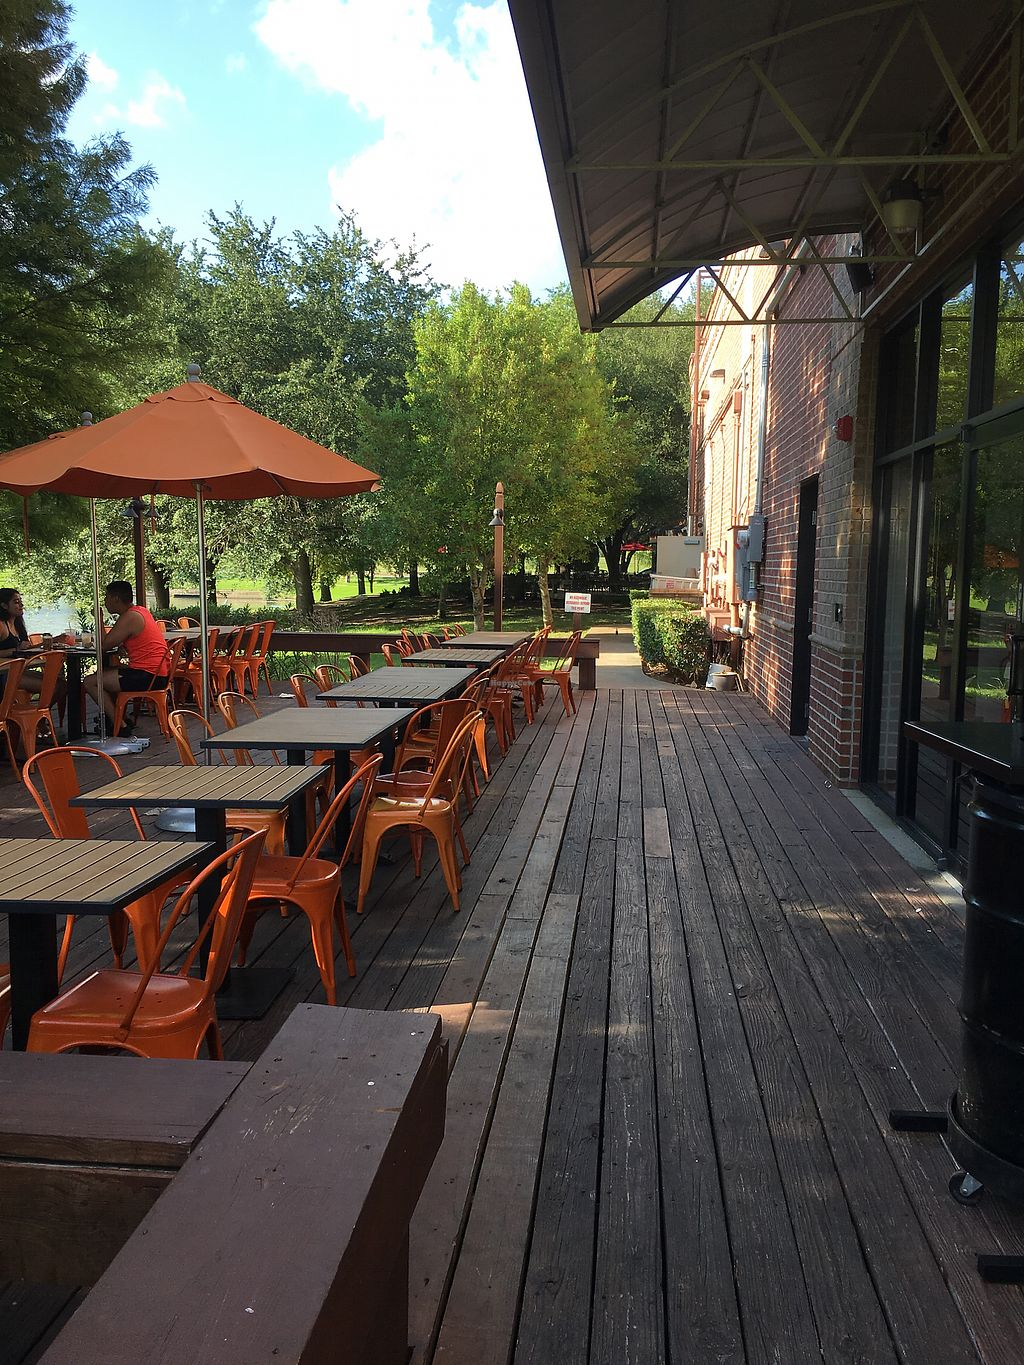 """Photo of Blaze Pizza  by <a href=""""/members/profile/teaisfortia"""">teaisfortia</a> <br/>back patio <br/> July 10, 2017  - <a href='/contact/abuse/image/95592/278544'>Report</a>"""